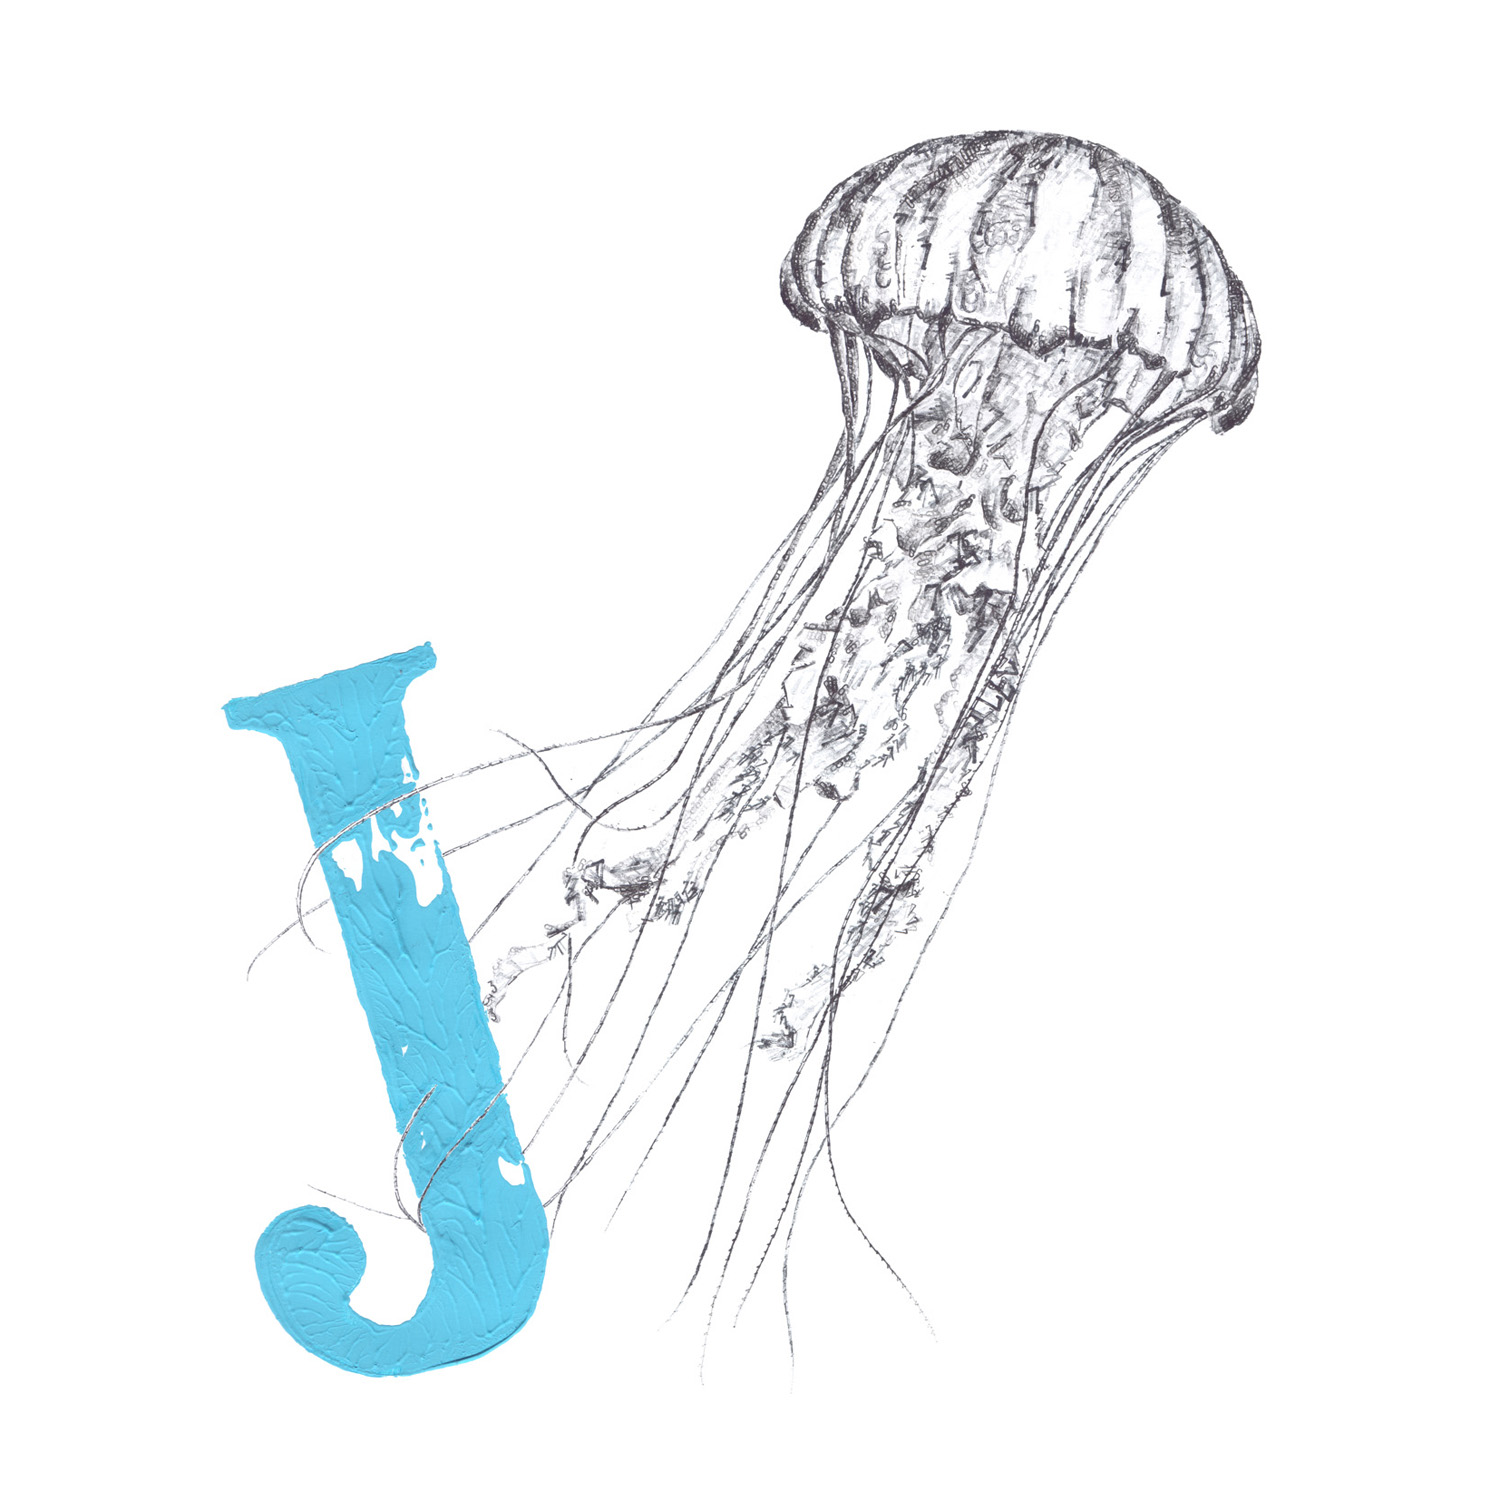 J for Jellyfish (16.07.2013), 2016, date stamp, ink and acrylic on paper, 50 x 50 cm